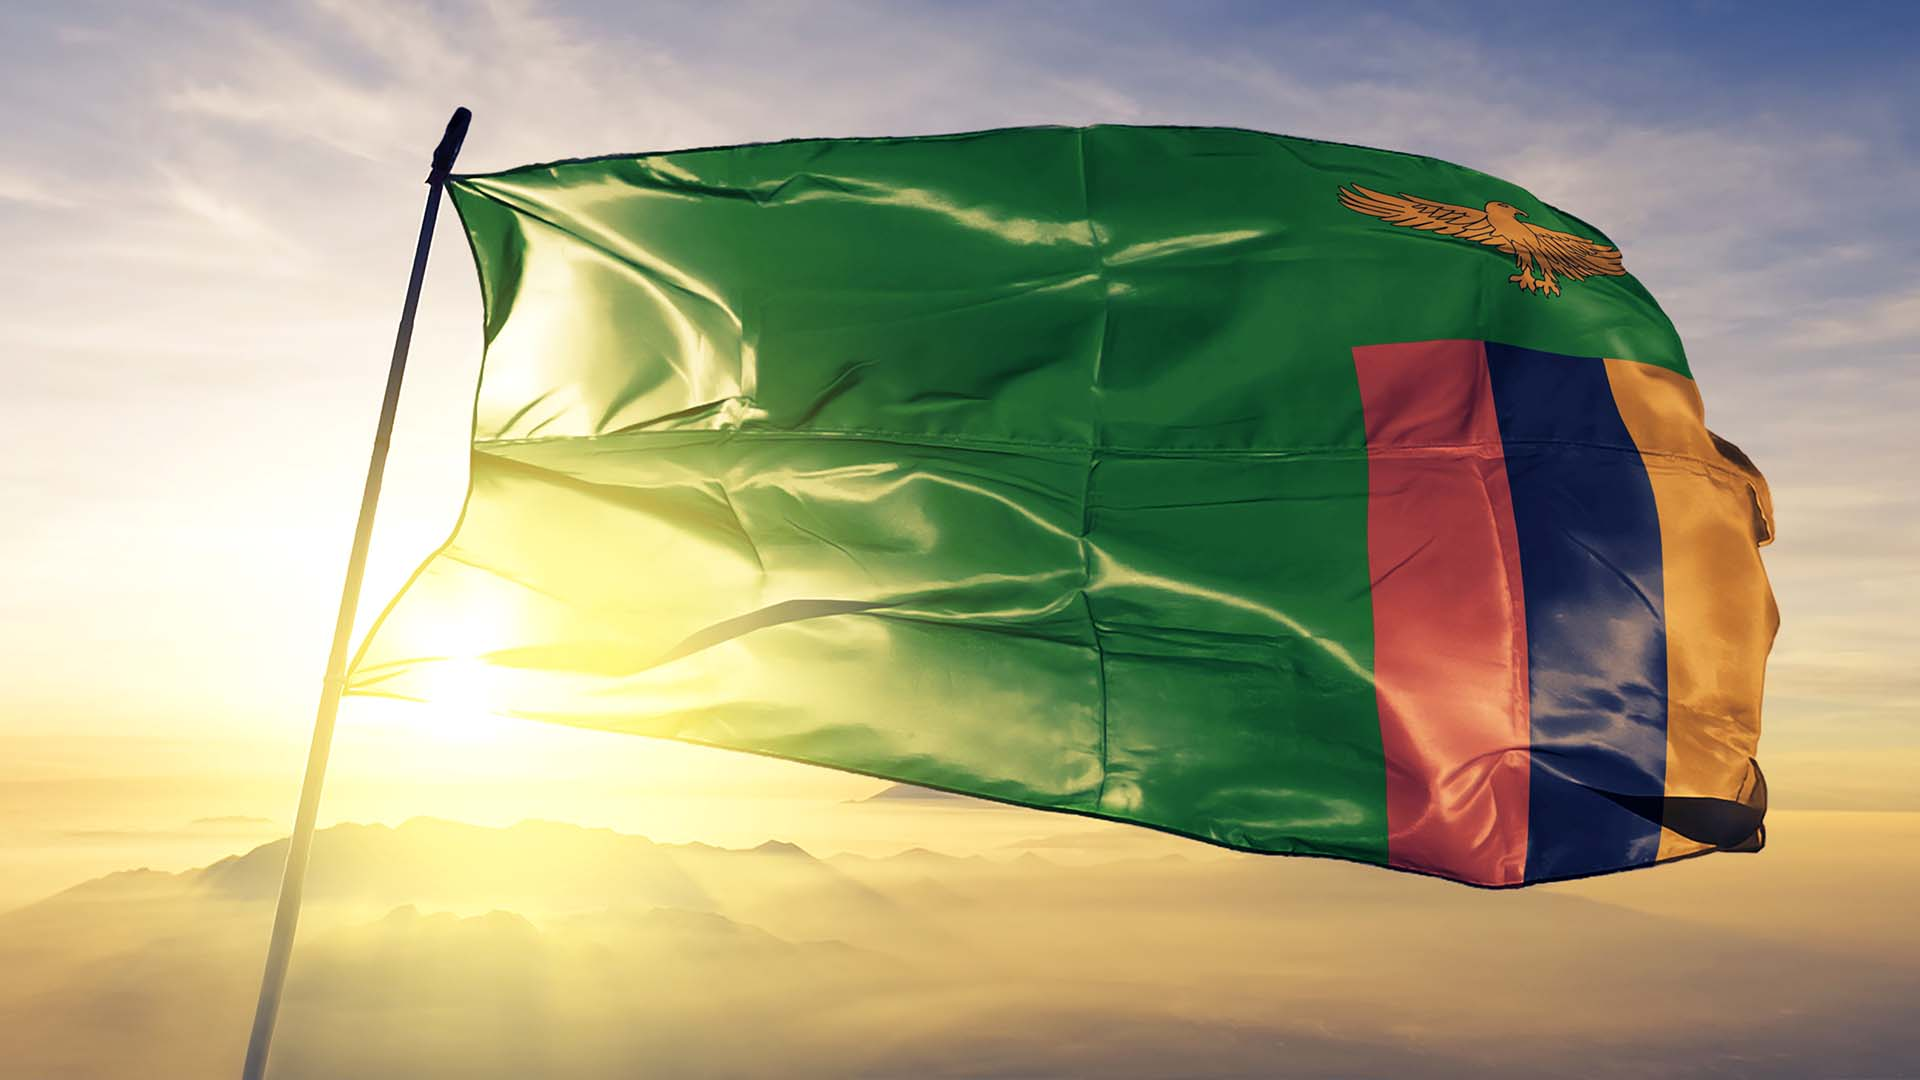 Patriotism - Zambian flag blowing in the wind, with sun golden glow shinning behind flag.